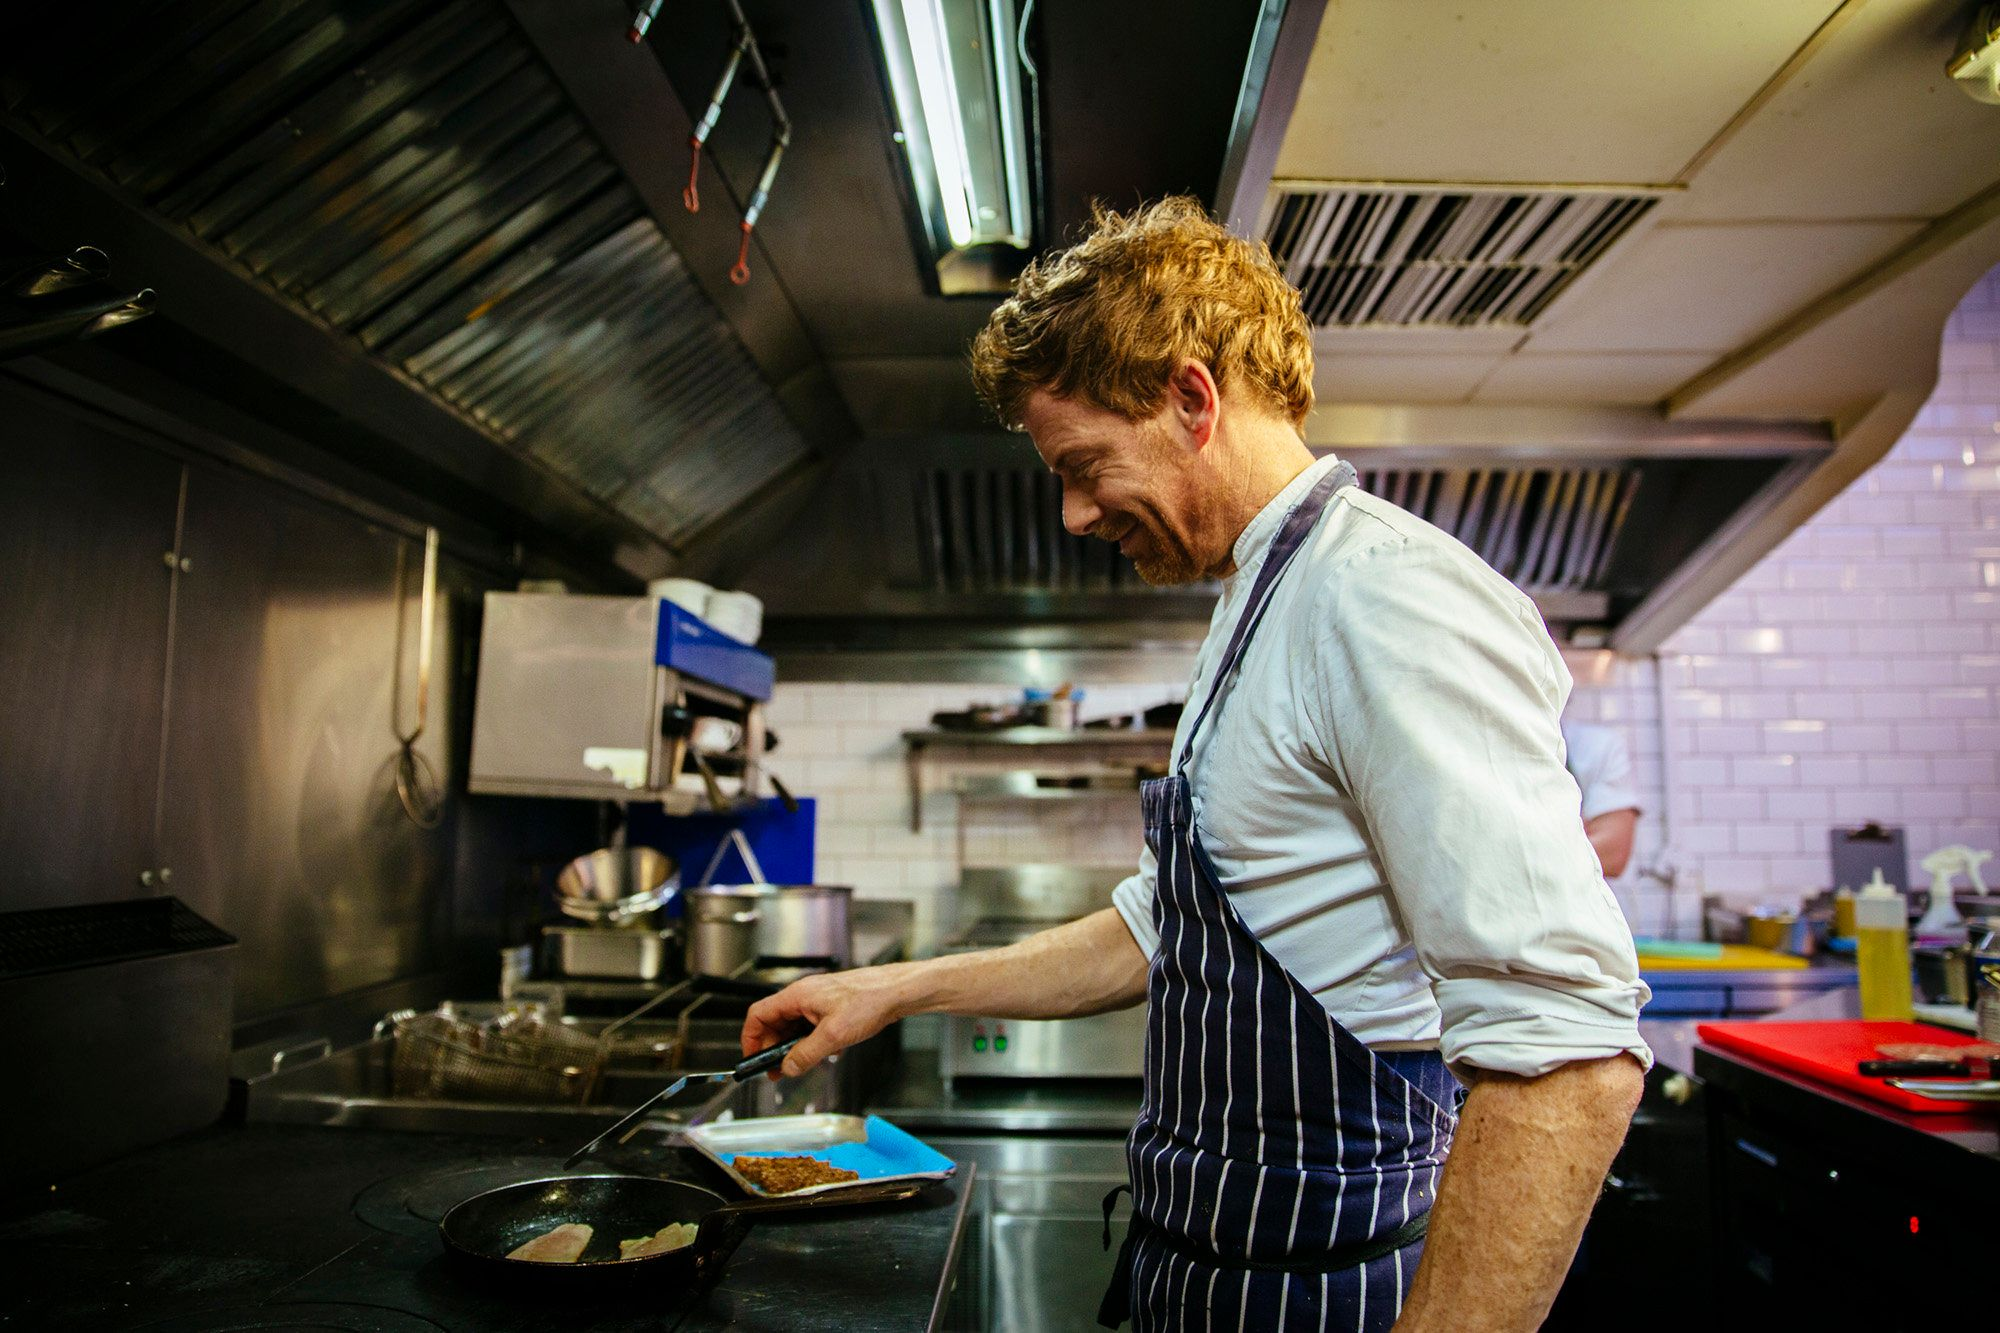 Award-Winning Chef Tom Aikens On How To Eat Fish Sustainably